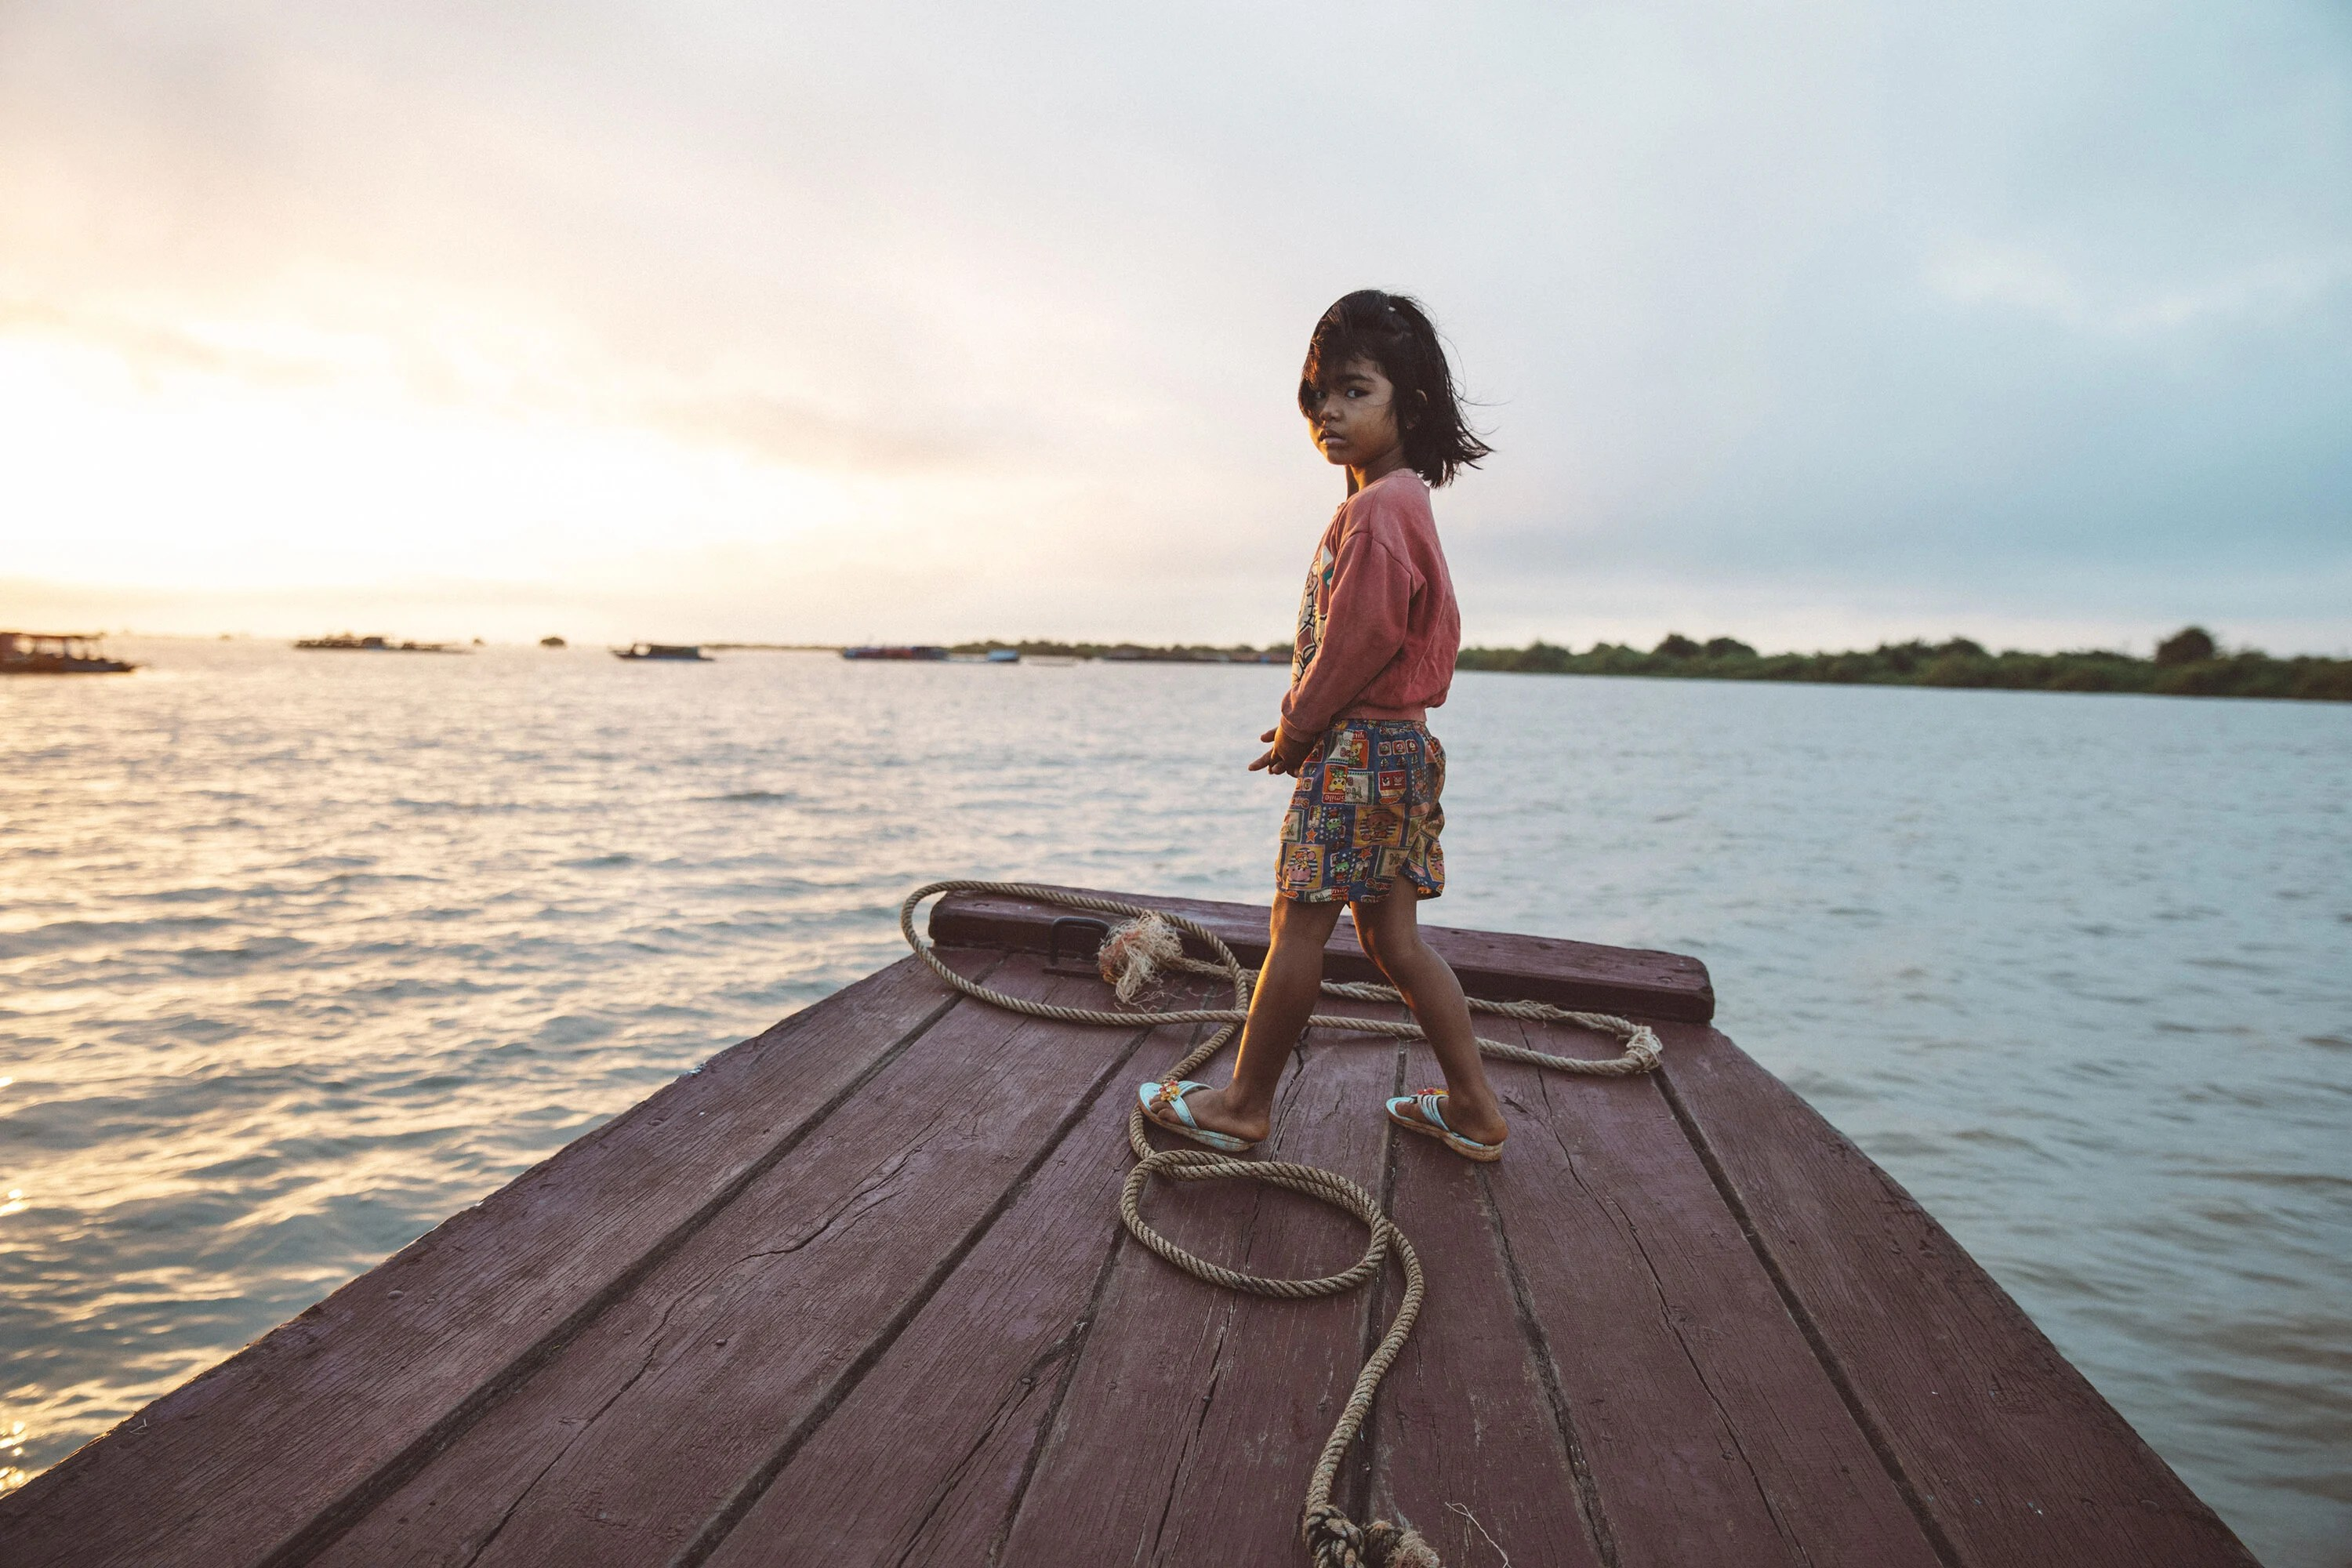 Child on the Tonle Sap Lake in Cambodia